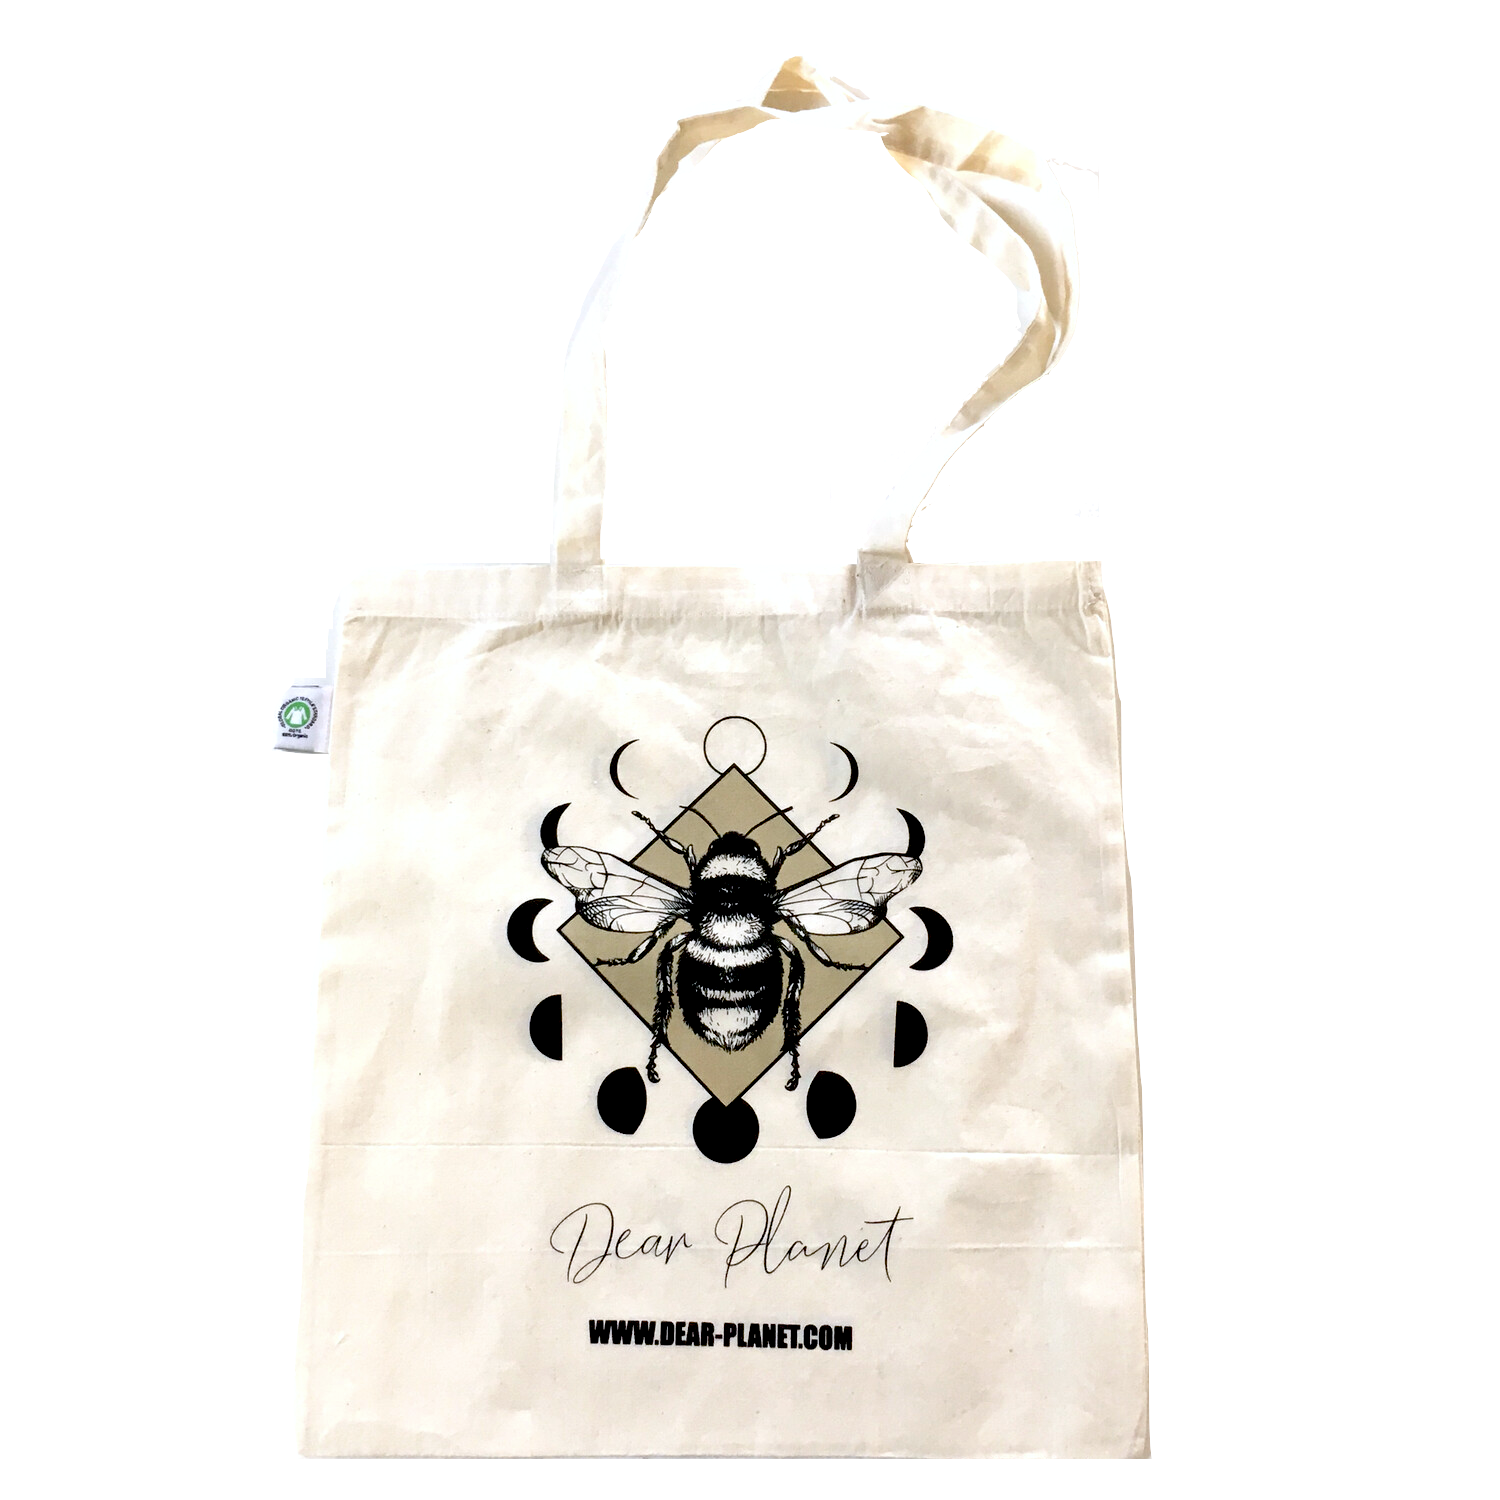 Dear Planet Totebag - Organic Cotton